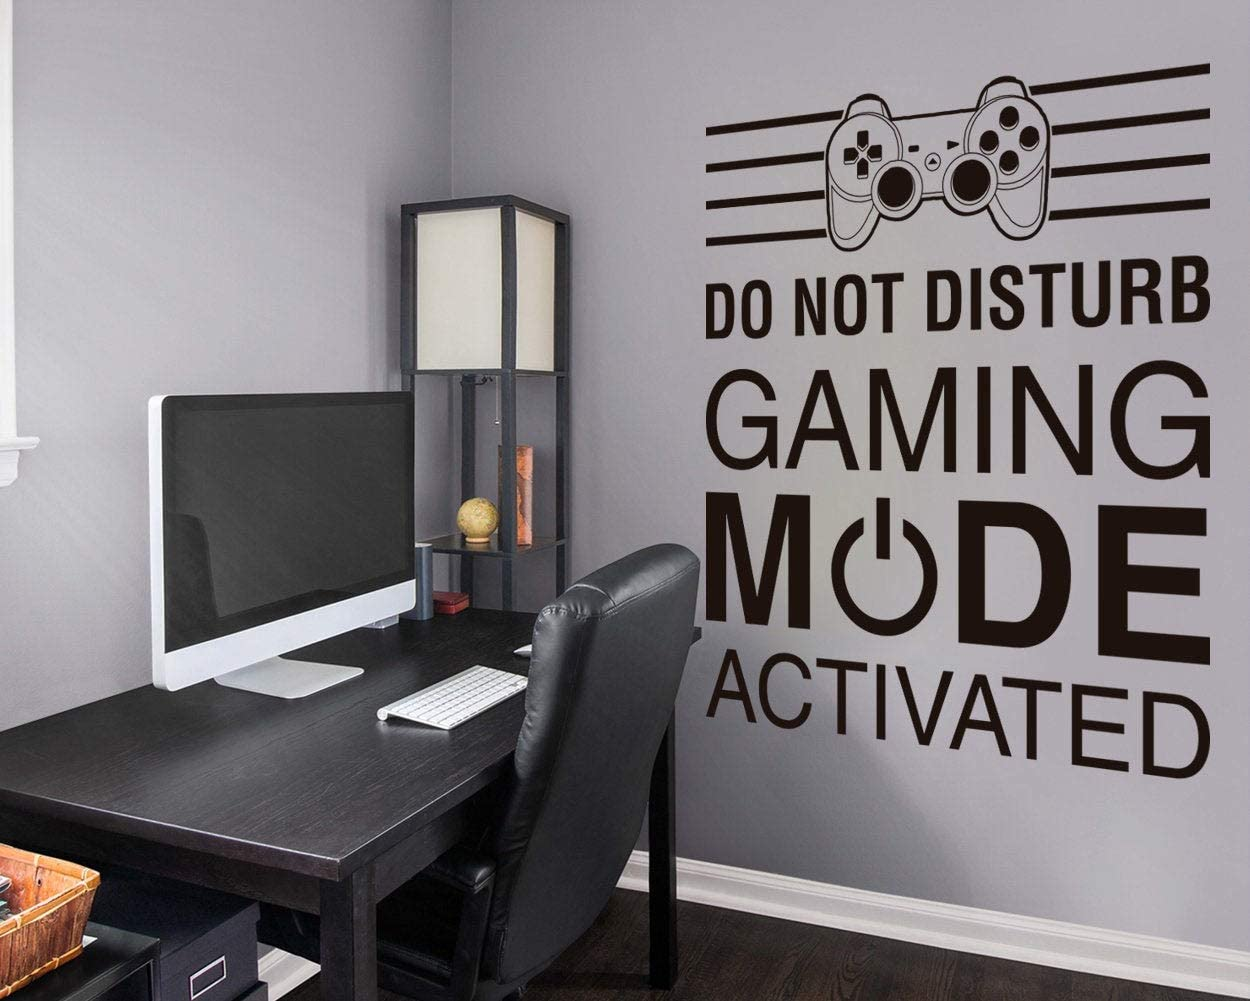 Gamer Wall Decor Gaming Mode Wall Decal Gamer Decor Gaming Room Wall Decor Video Game Door Decal Kids Bedroom Decals Wall Stickers Amazon Co Uk Baby